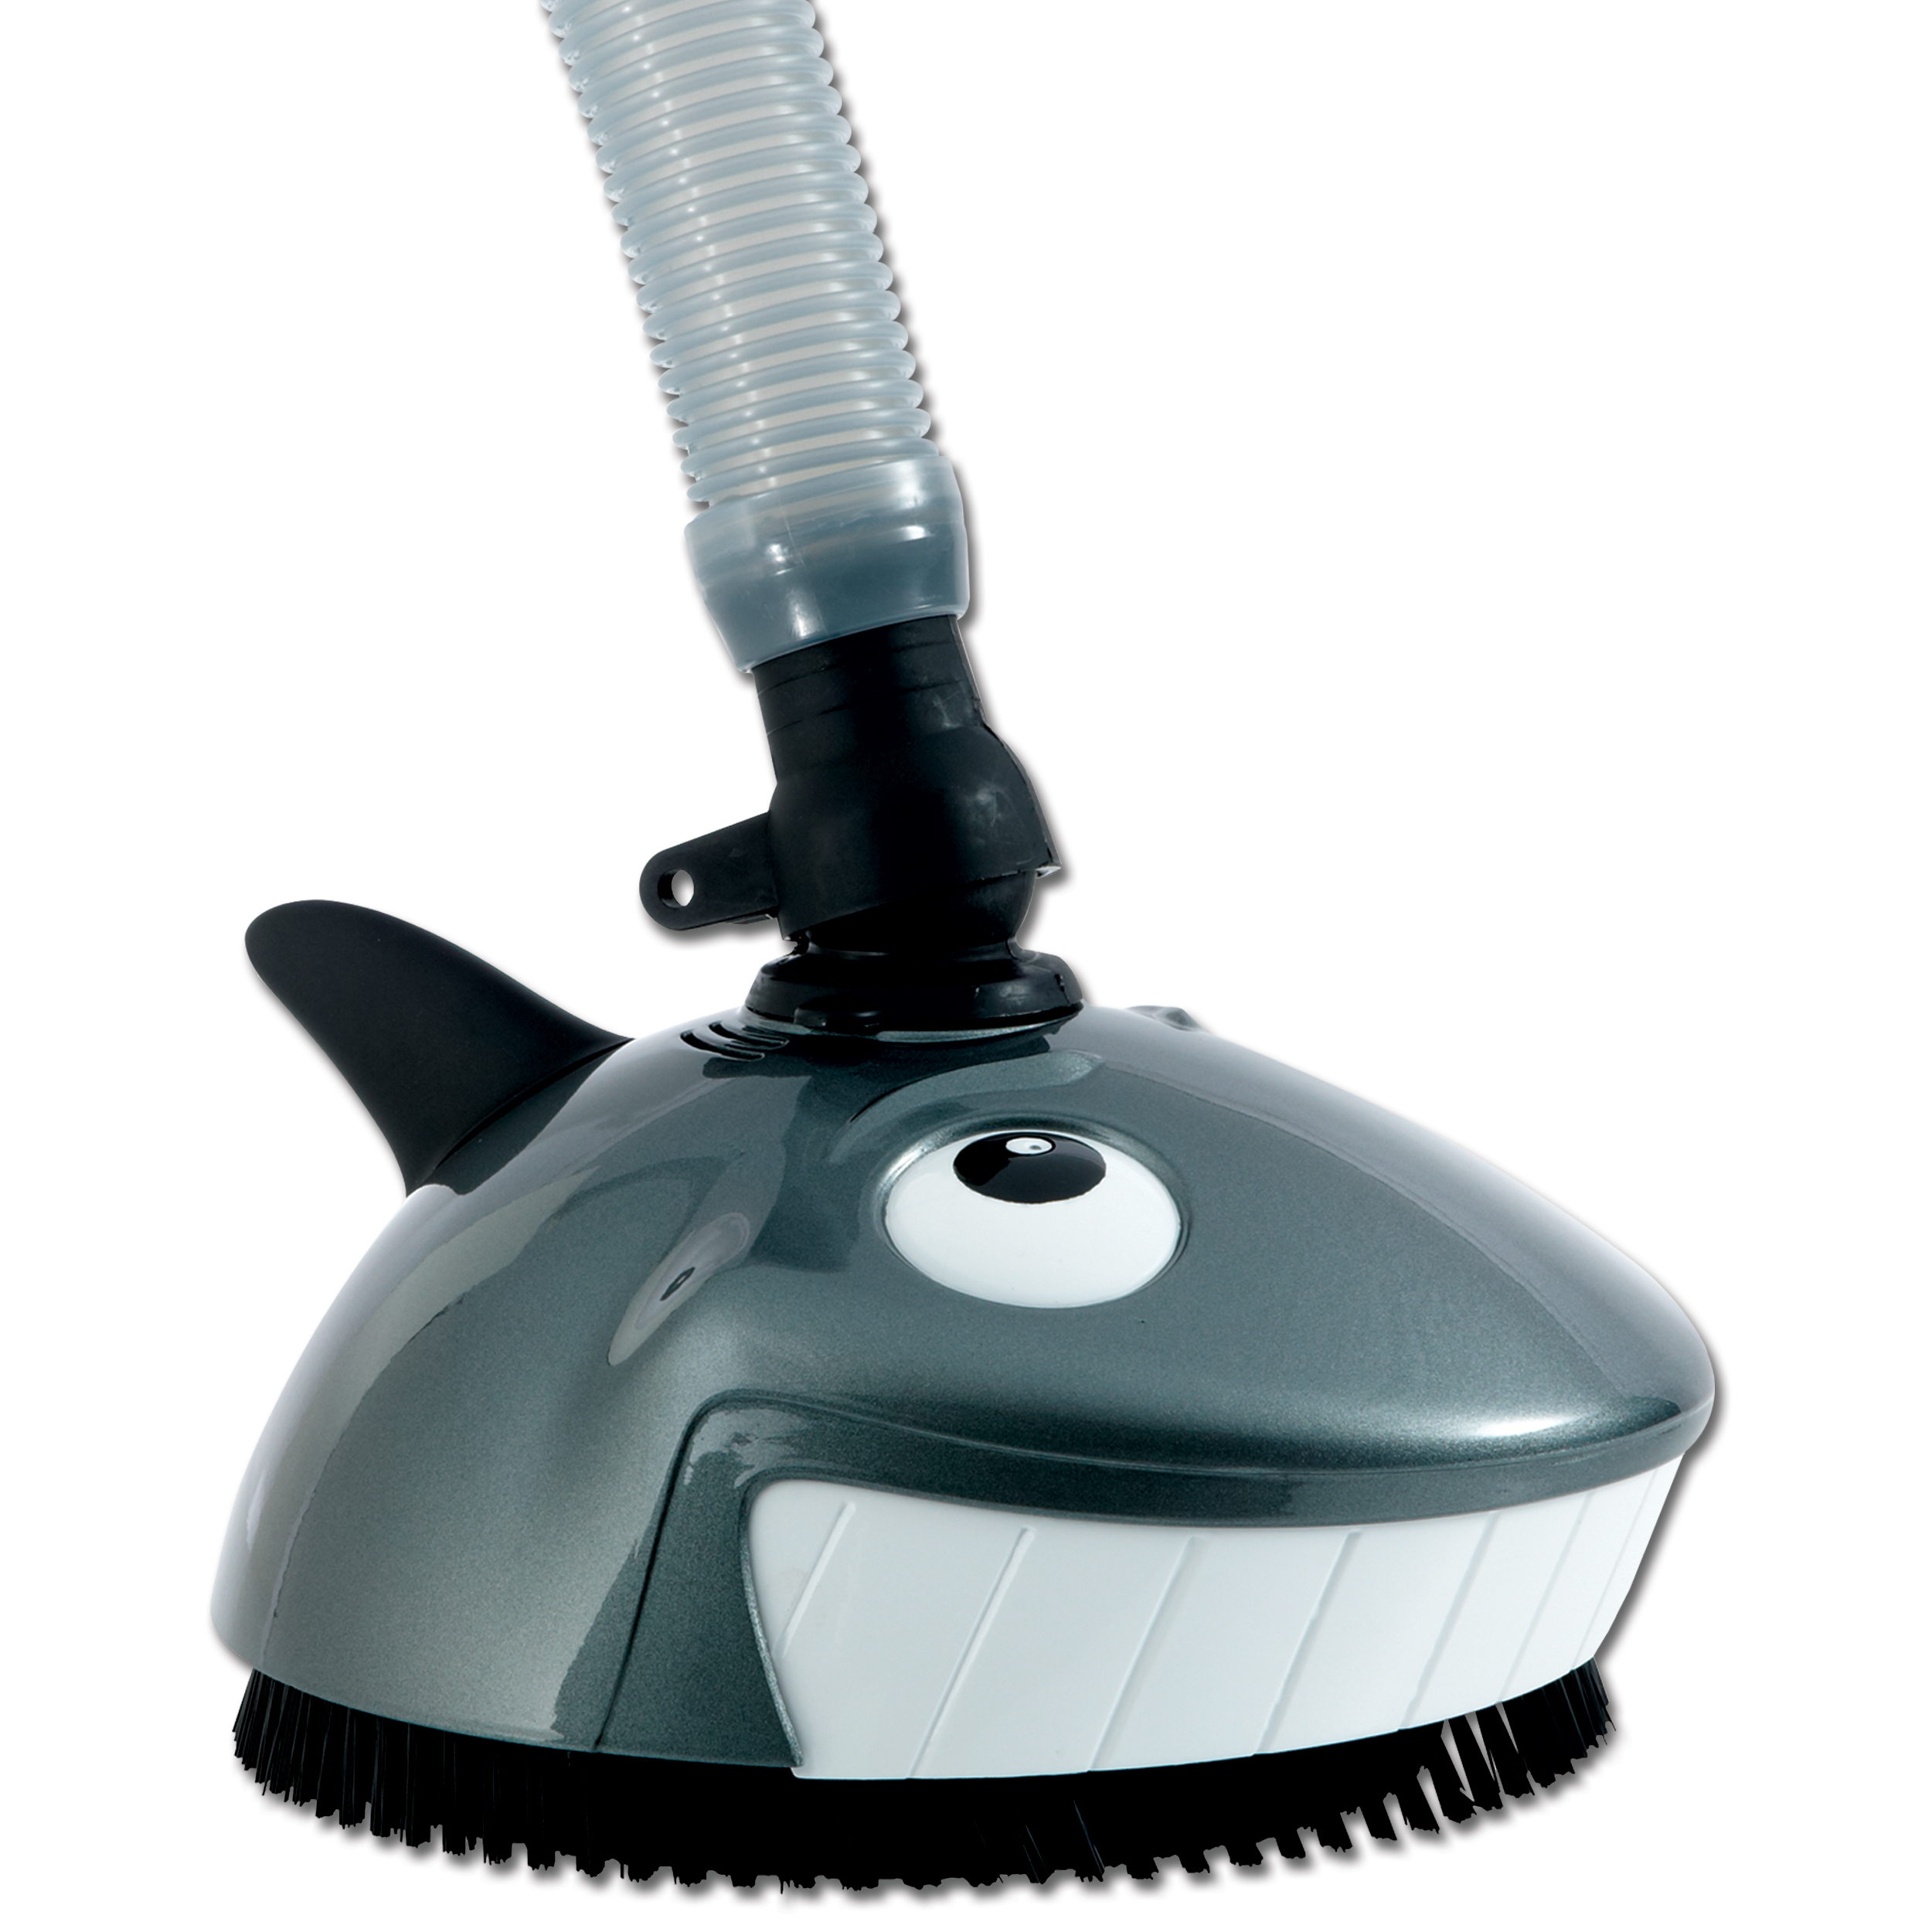 Pentair Kreepy Krauly 'Lil Shark Above Ground Suction Pool Cleaner - 360100